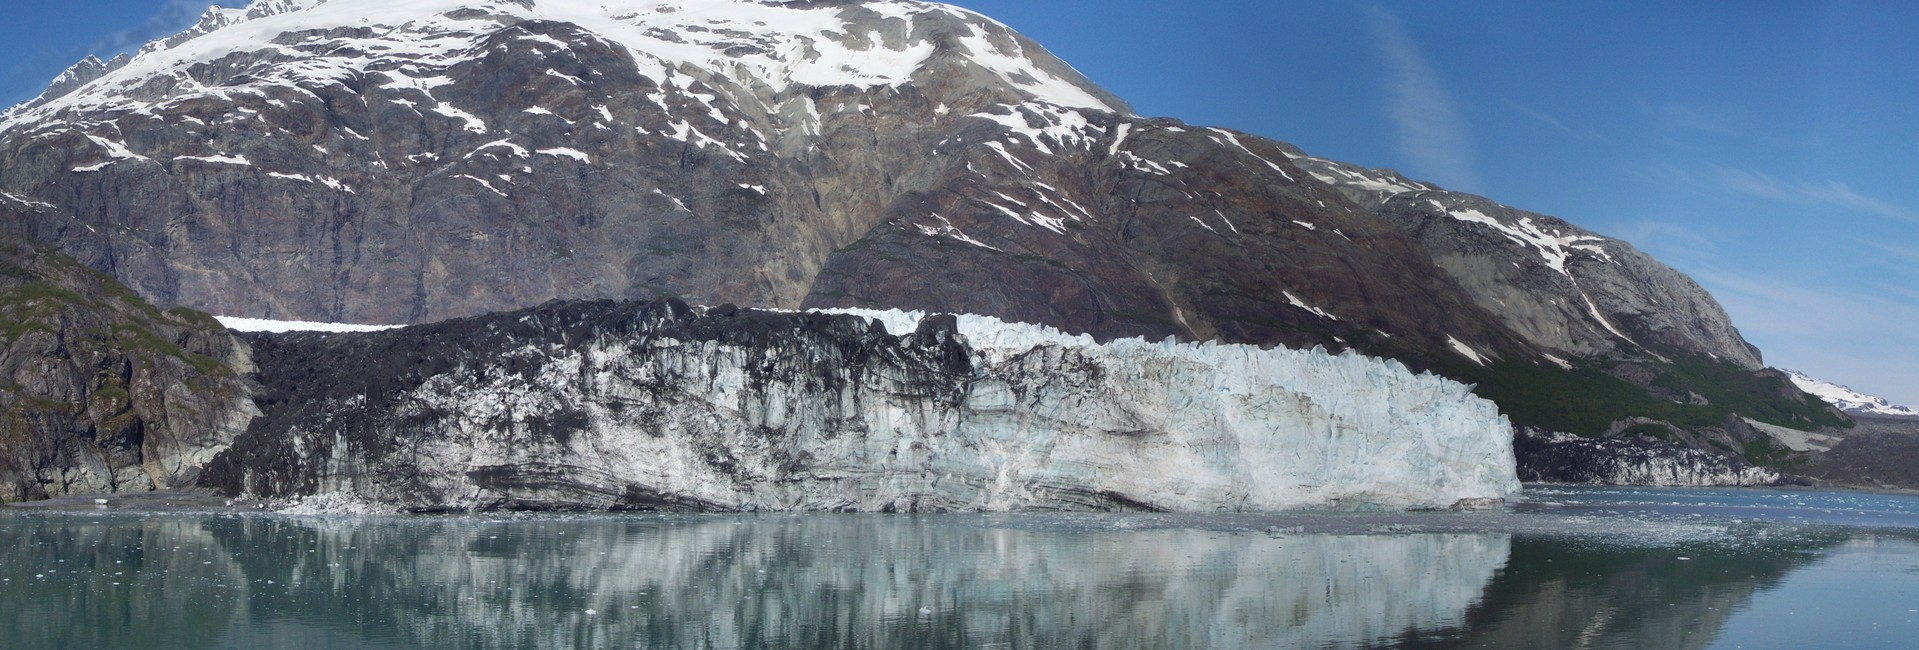 pano9_crop1_margerie_glacier_panoramic_180.jpg